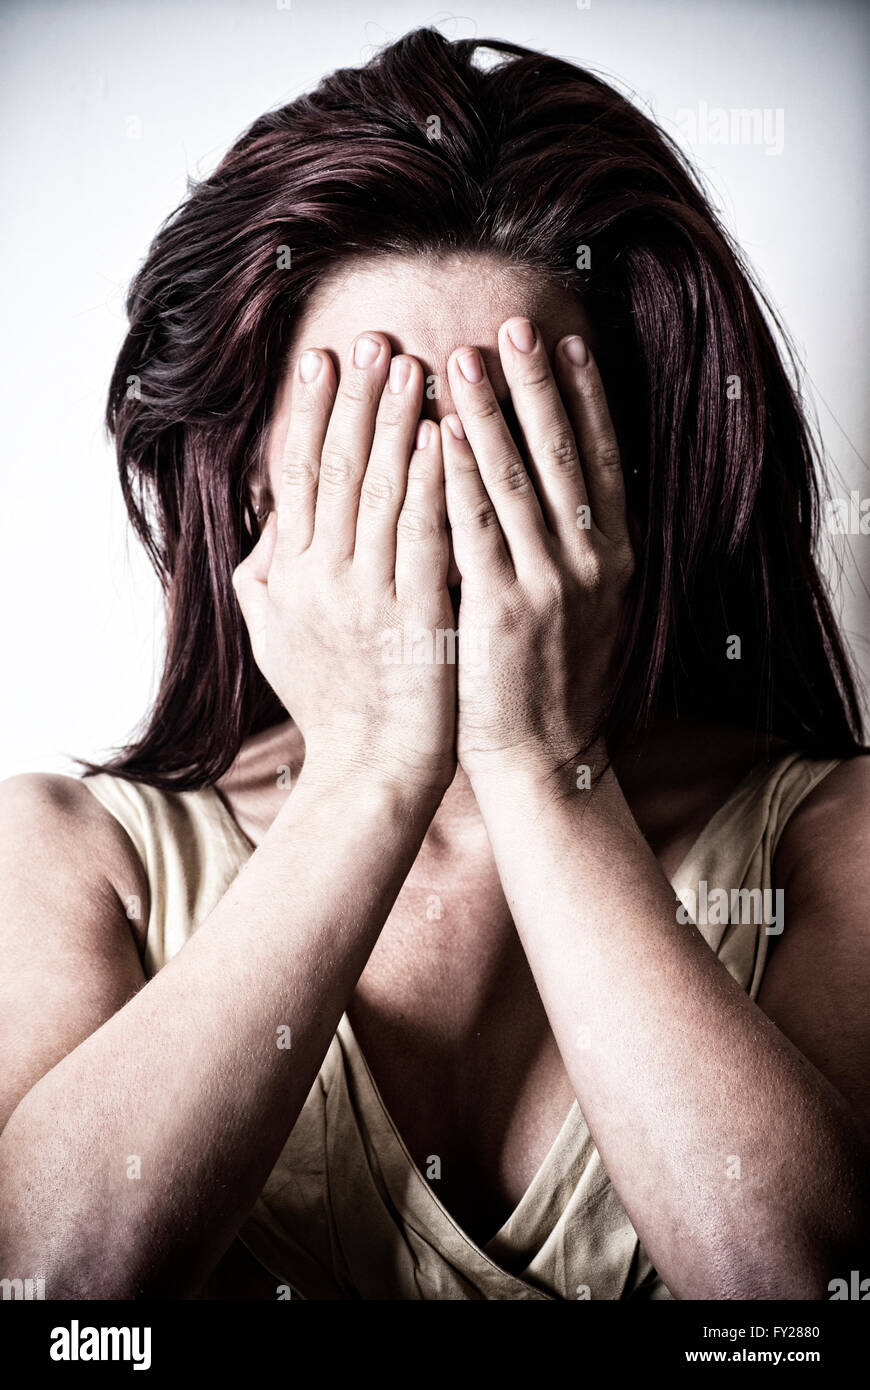 Young woman hiding face with her hands - Stock Image